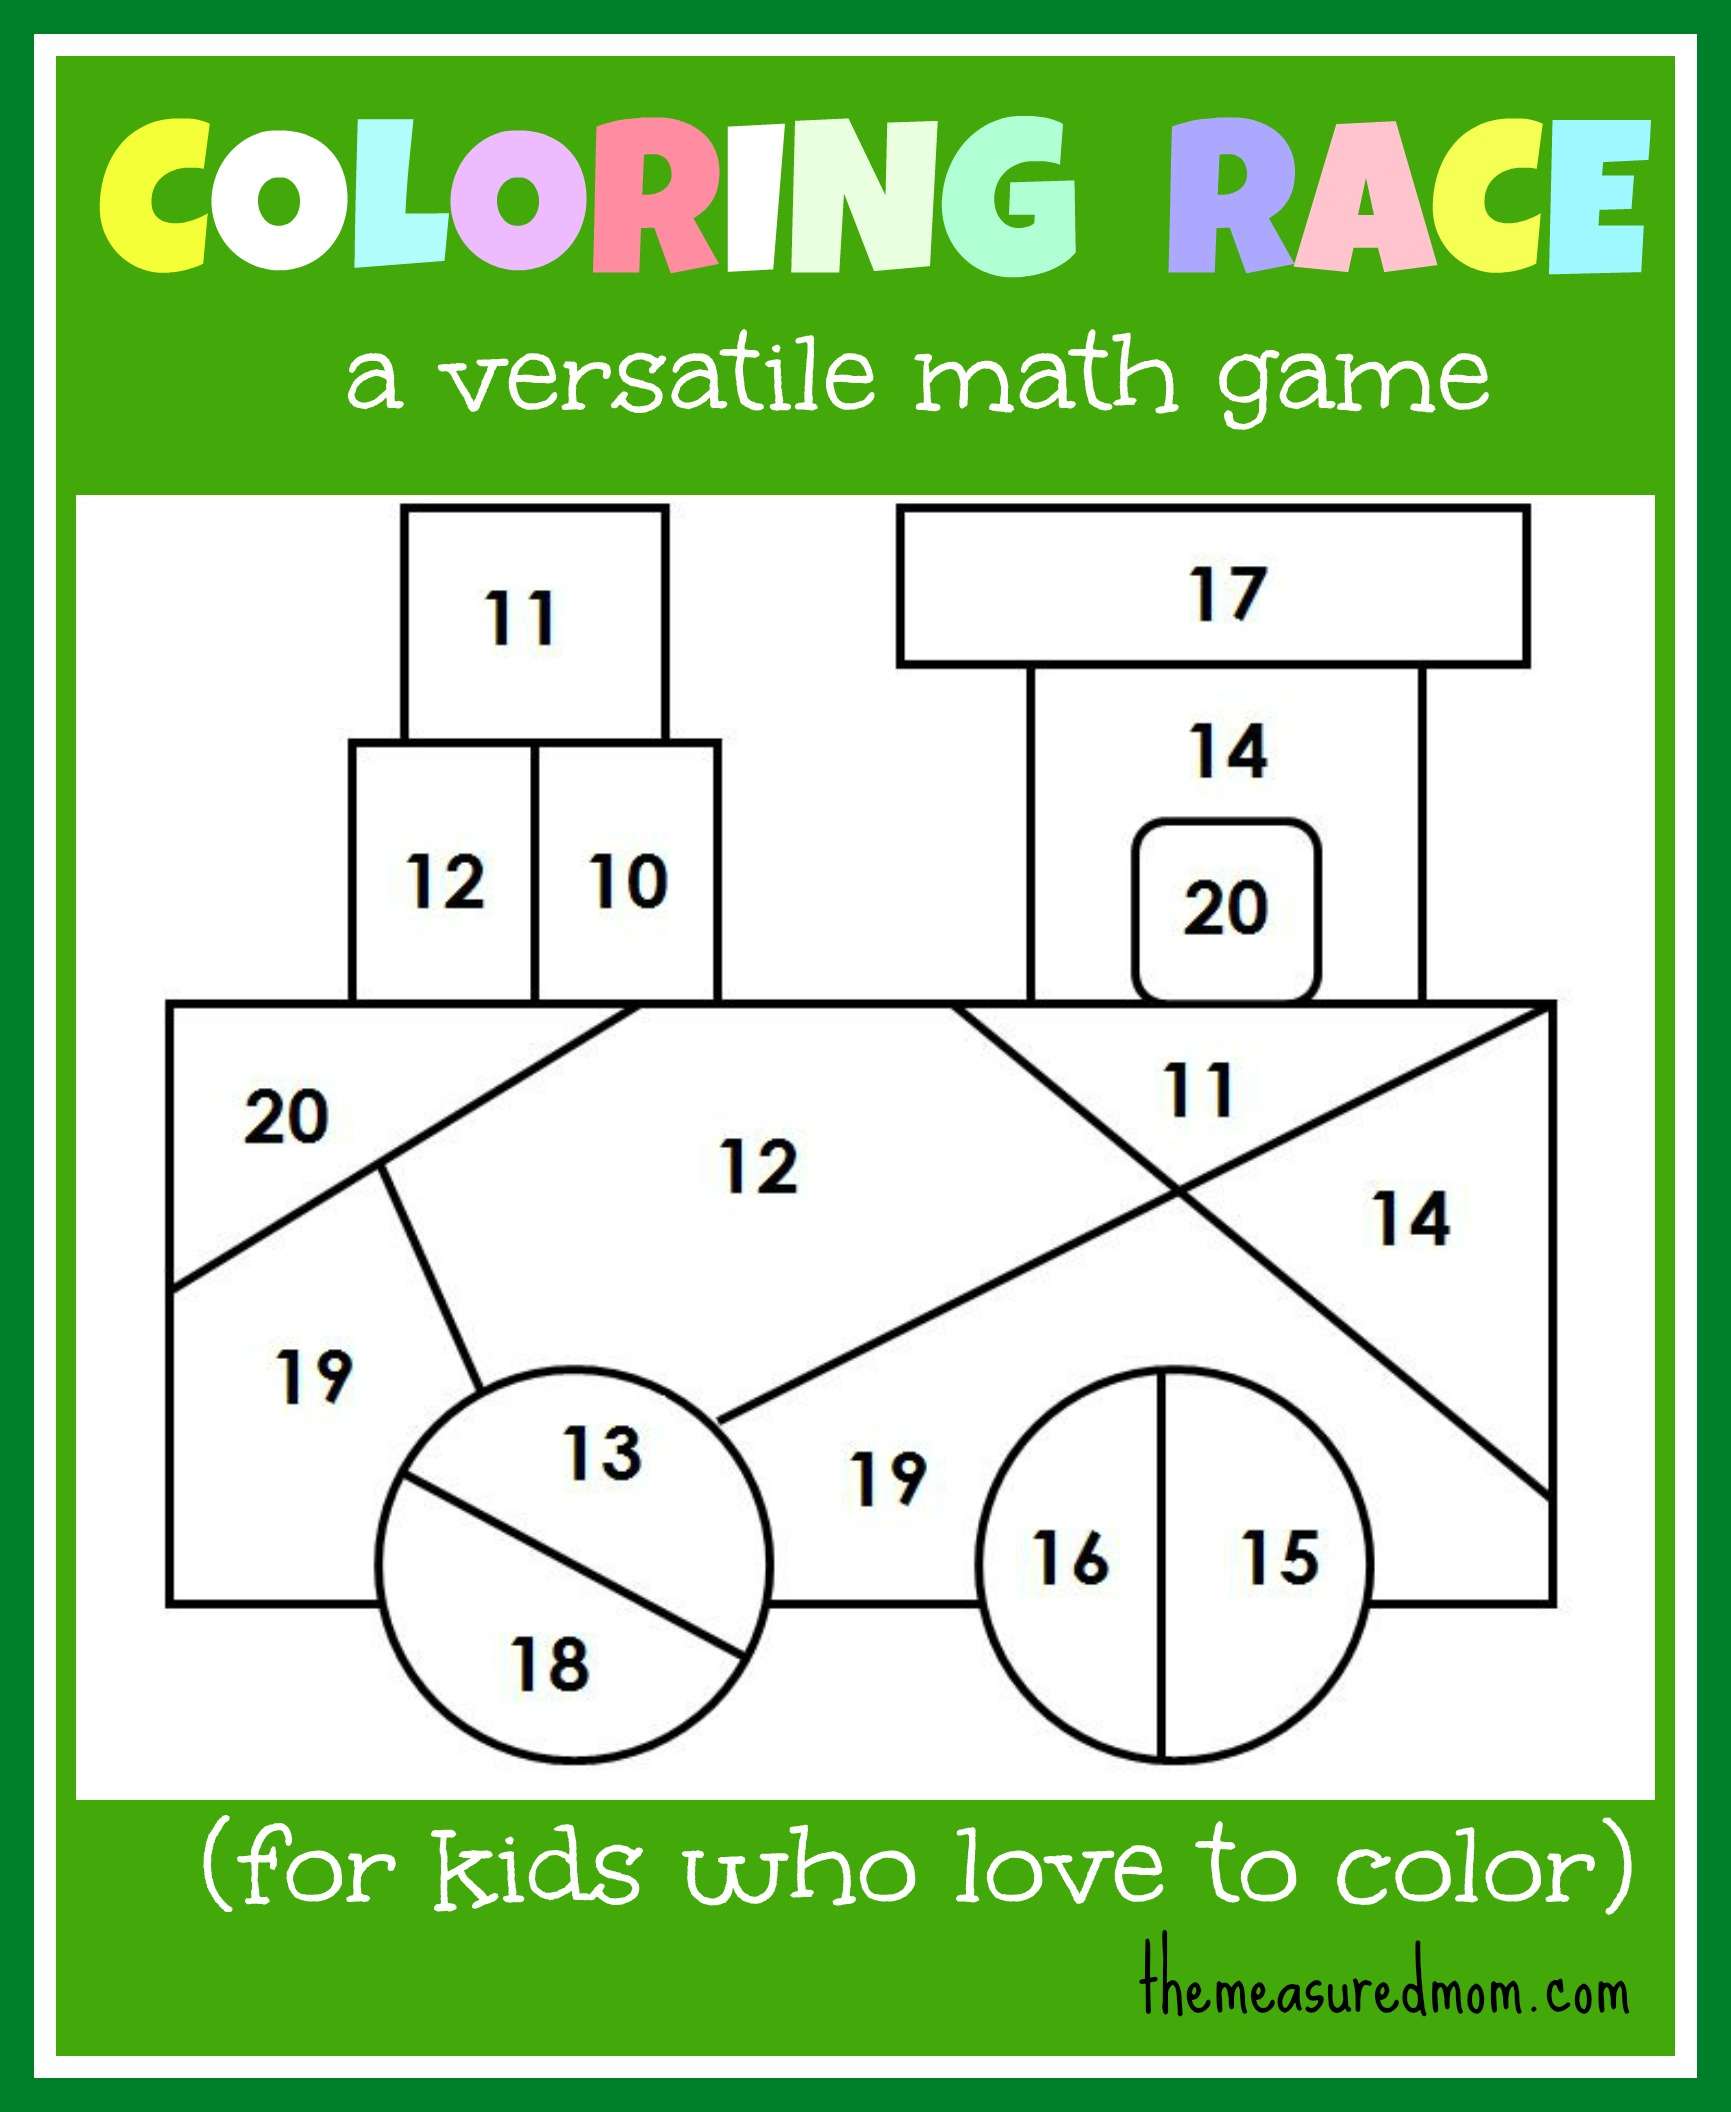 Math game for kids: Coloring Race combines math and coloring ...